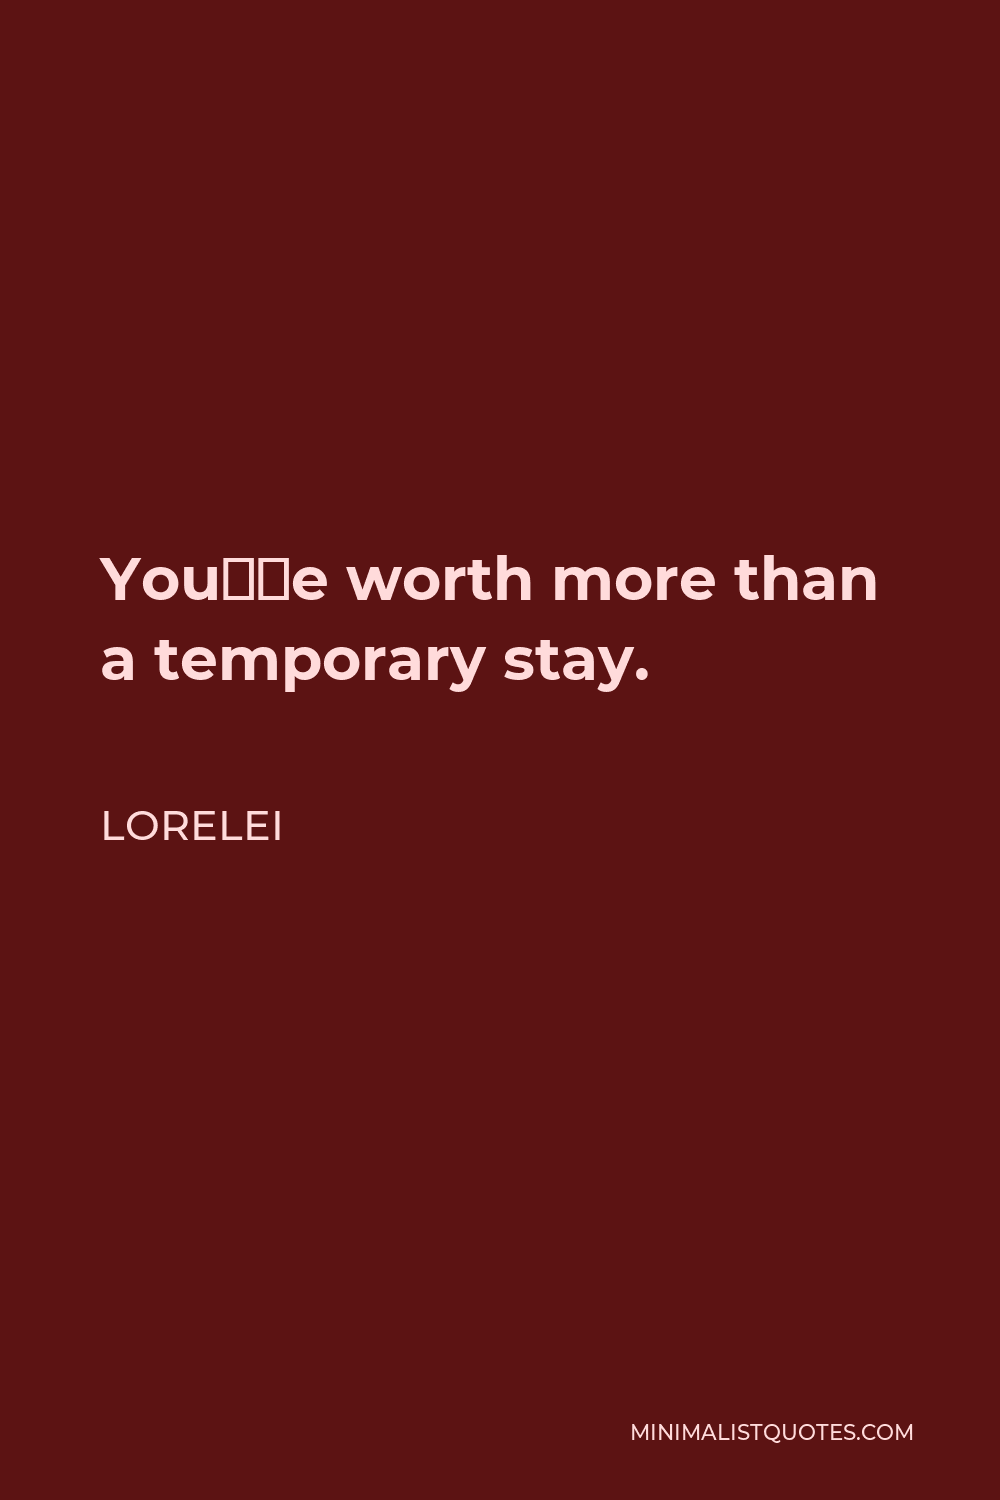 Lorelei Quote - You're worth more than a temporary stay.